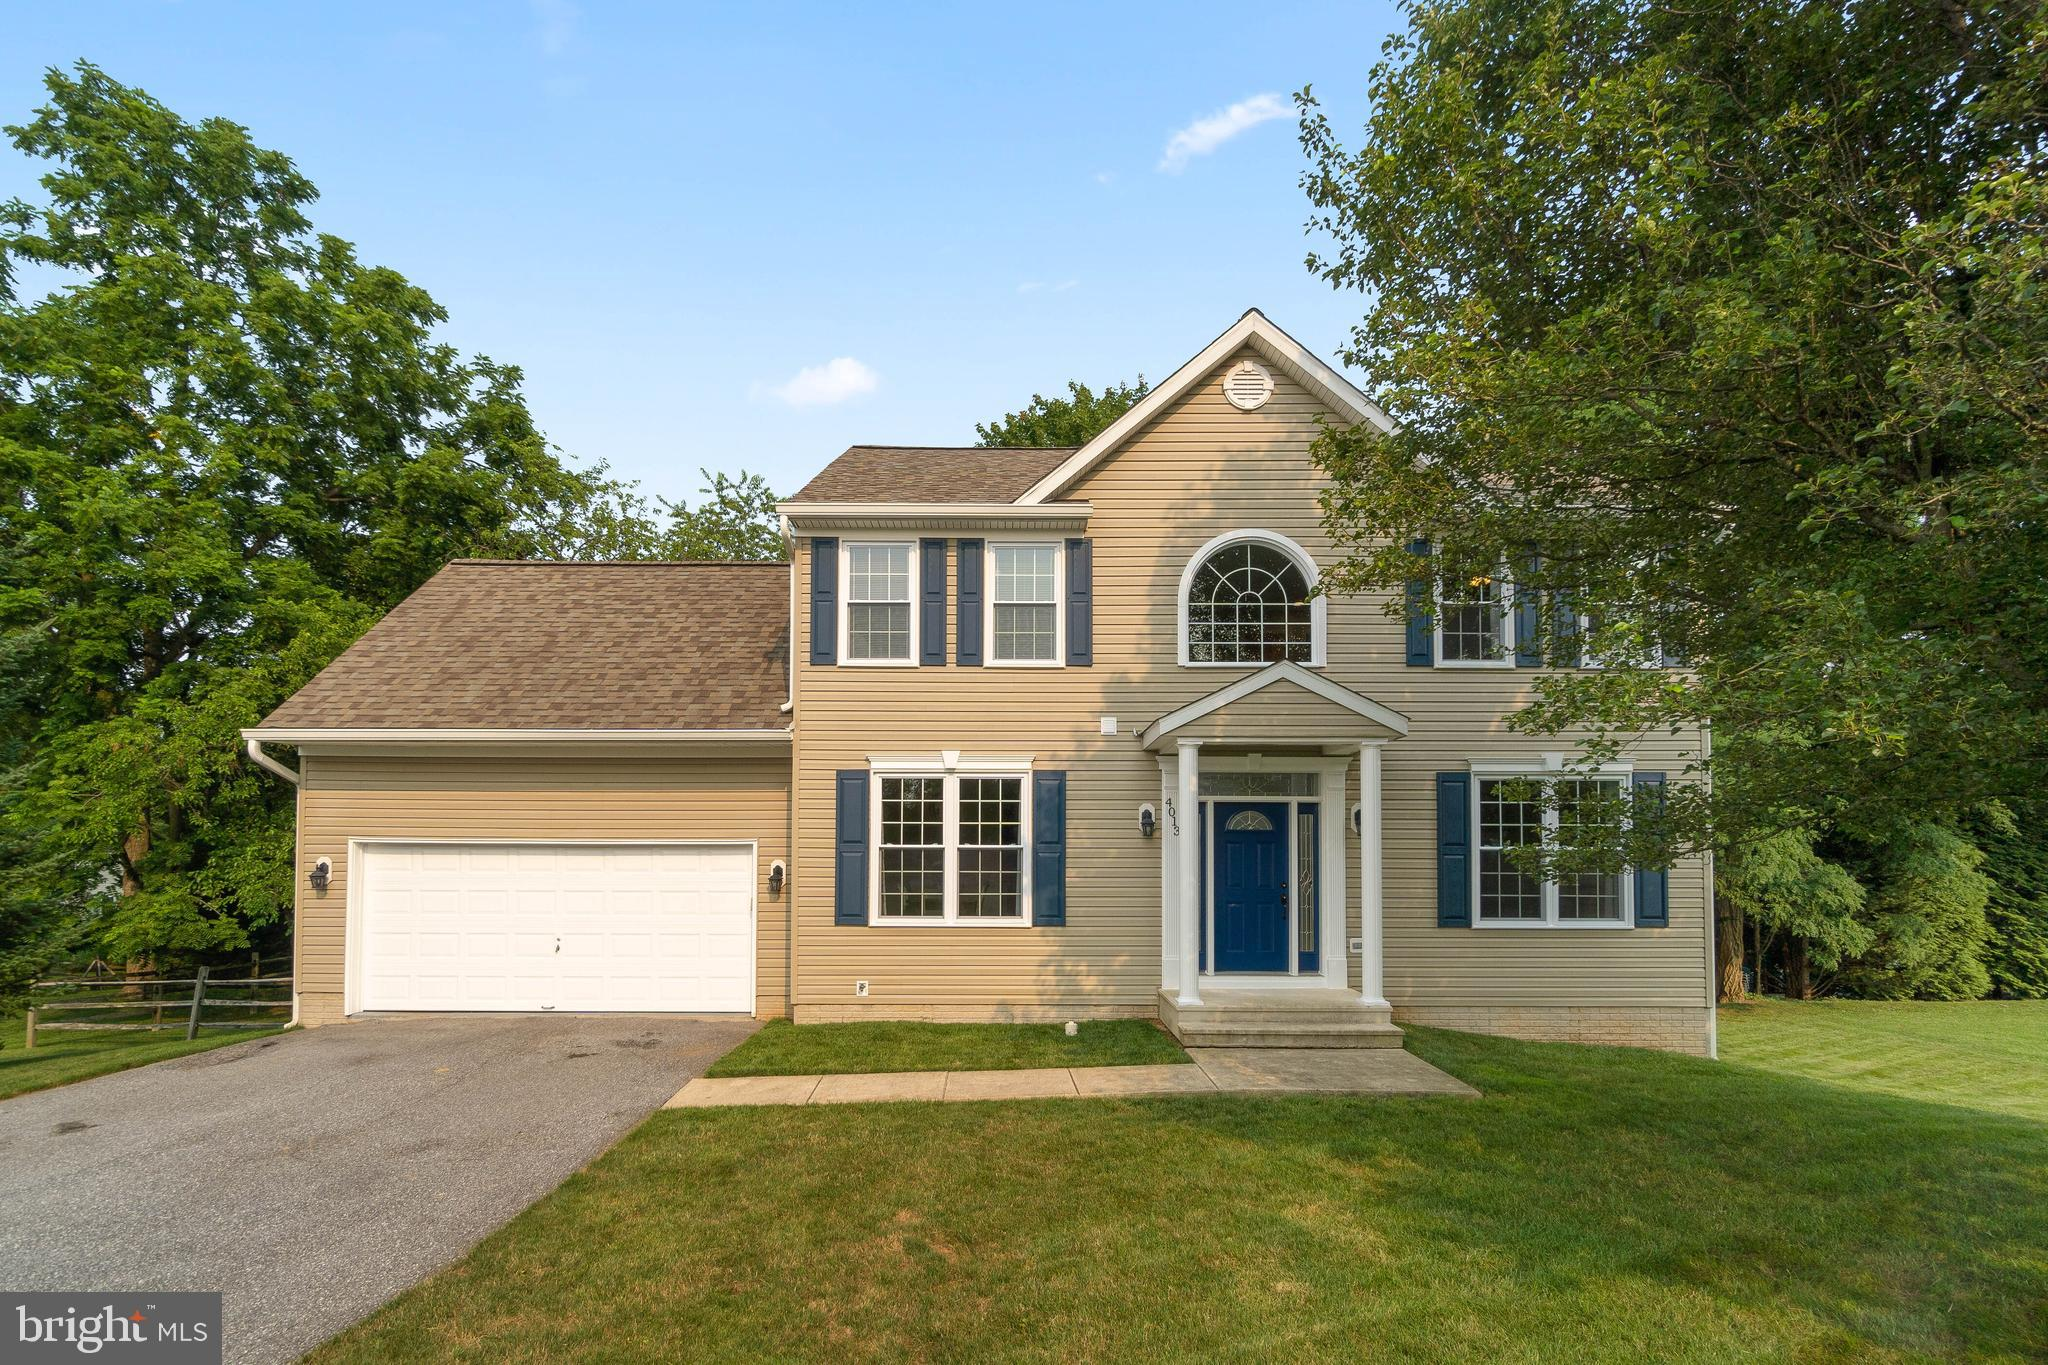 A landscaped .34 acre homesite welcomes you and your guests to this outstanding 1,900 sqft colonial